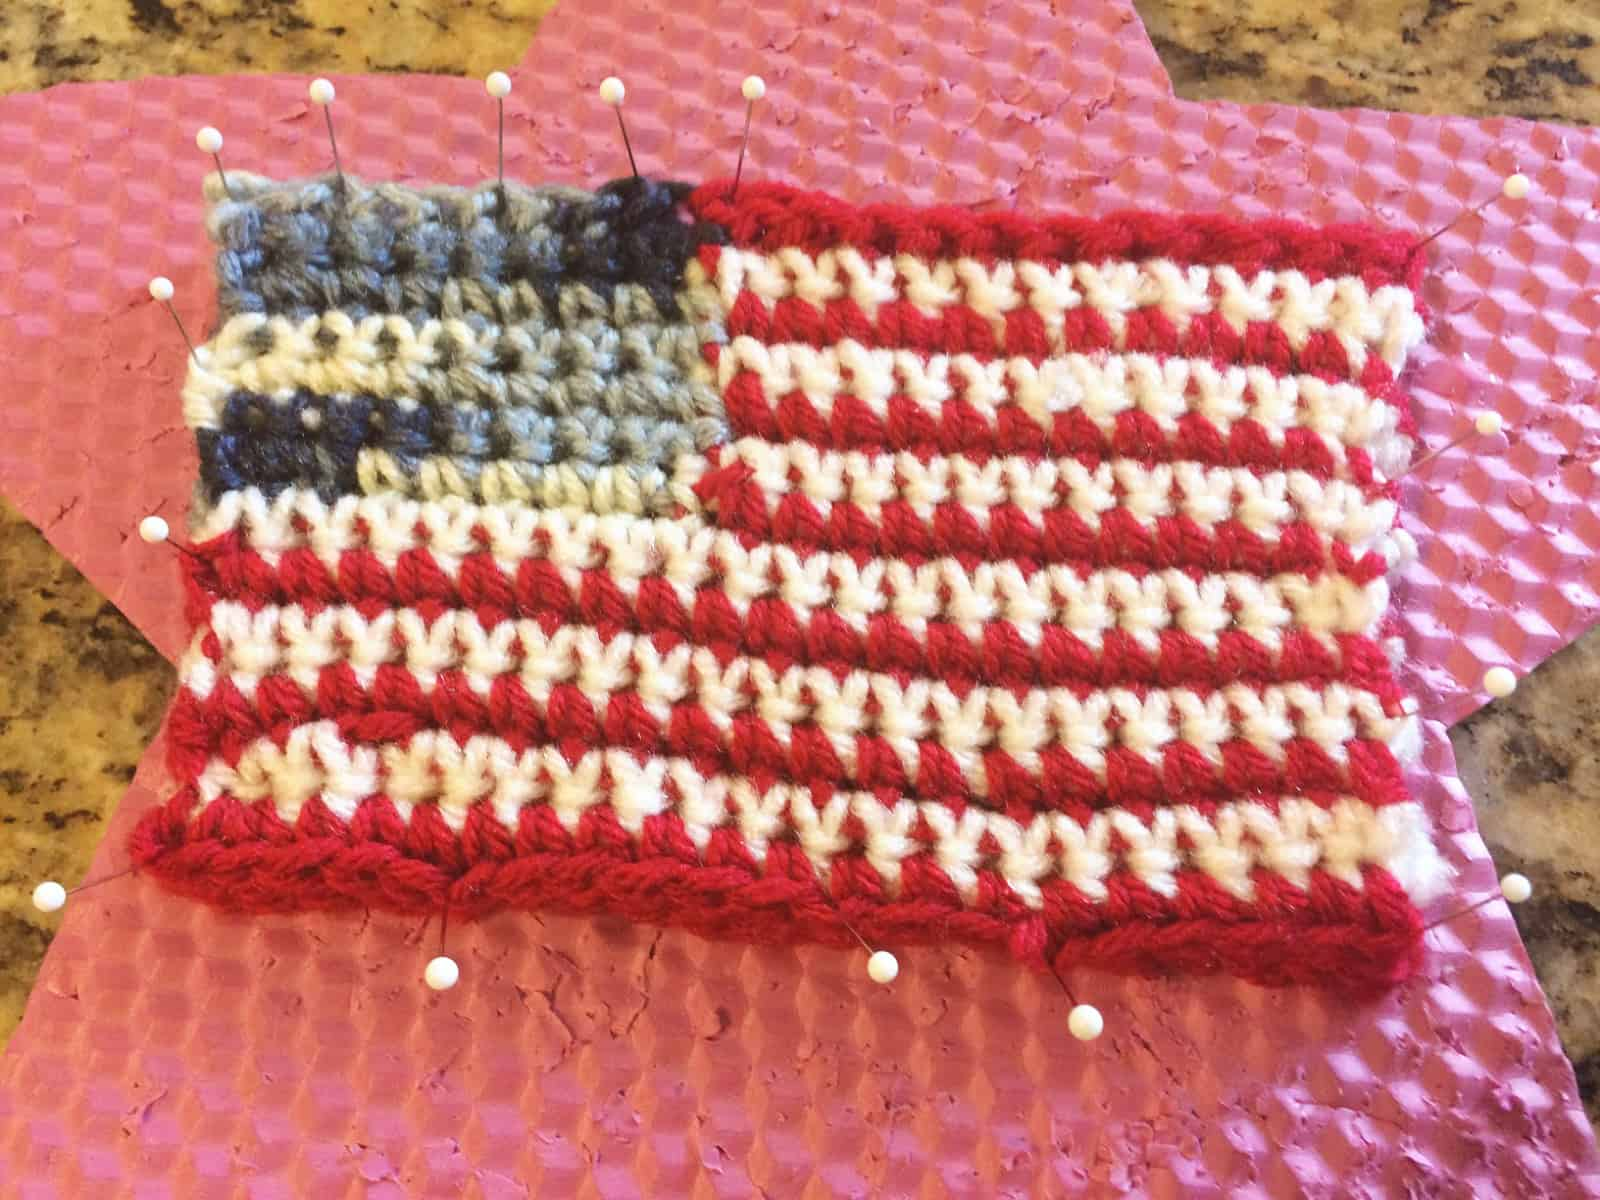 picture of crochet us flag pinned to pin foam for blocking